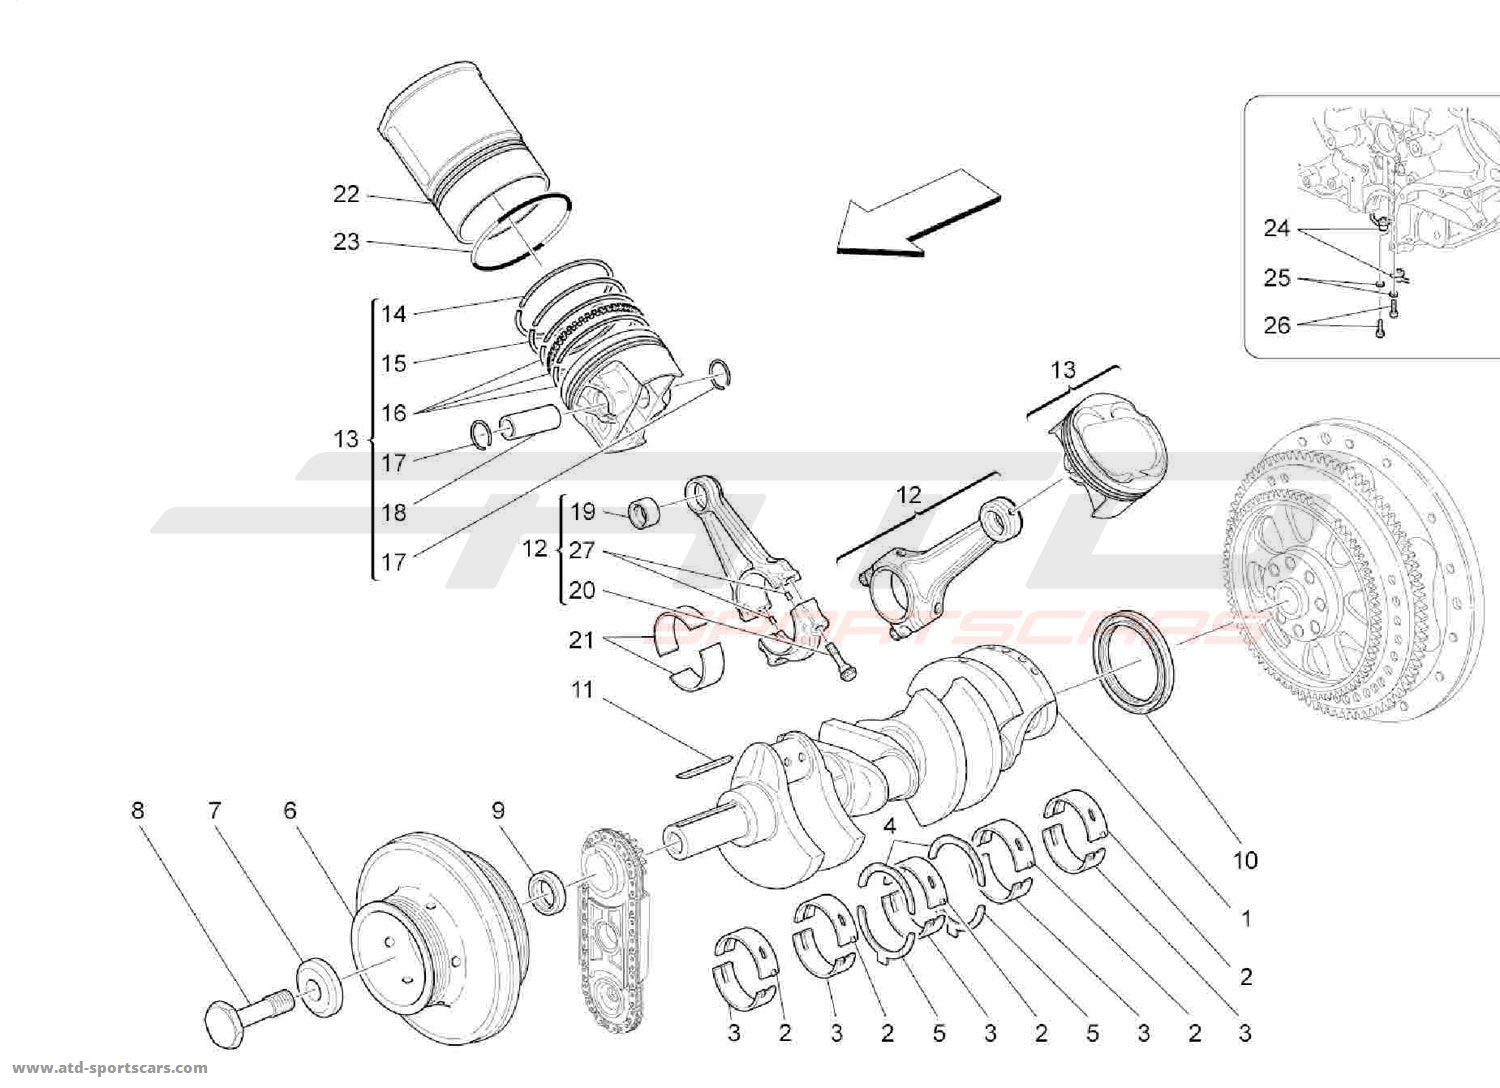 Maserati Coupe Wiring Diagrams. Maserati. Auto Wiring Diagram